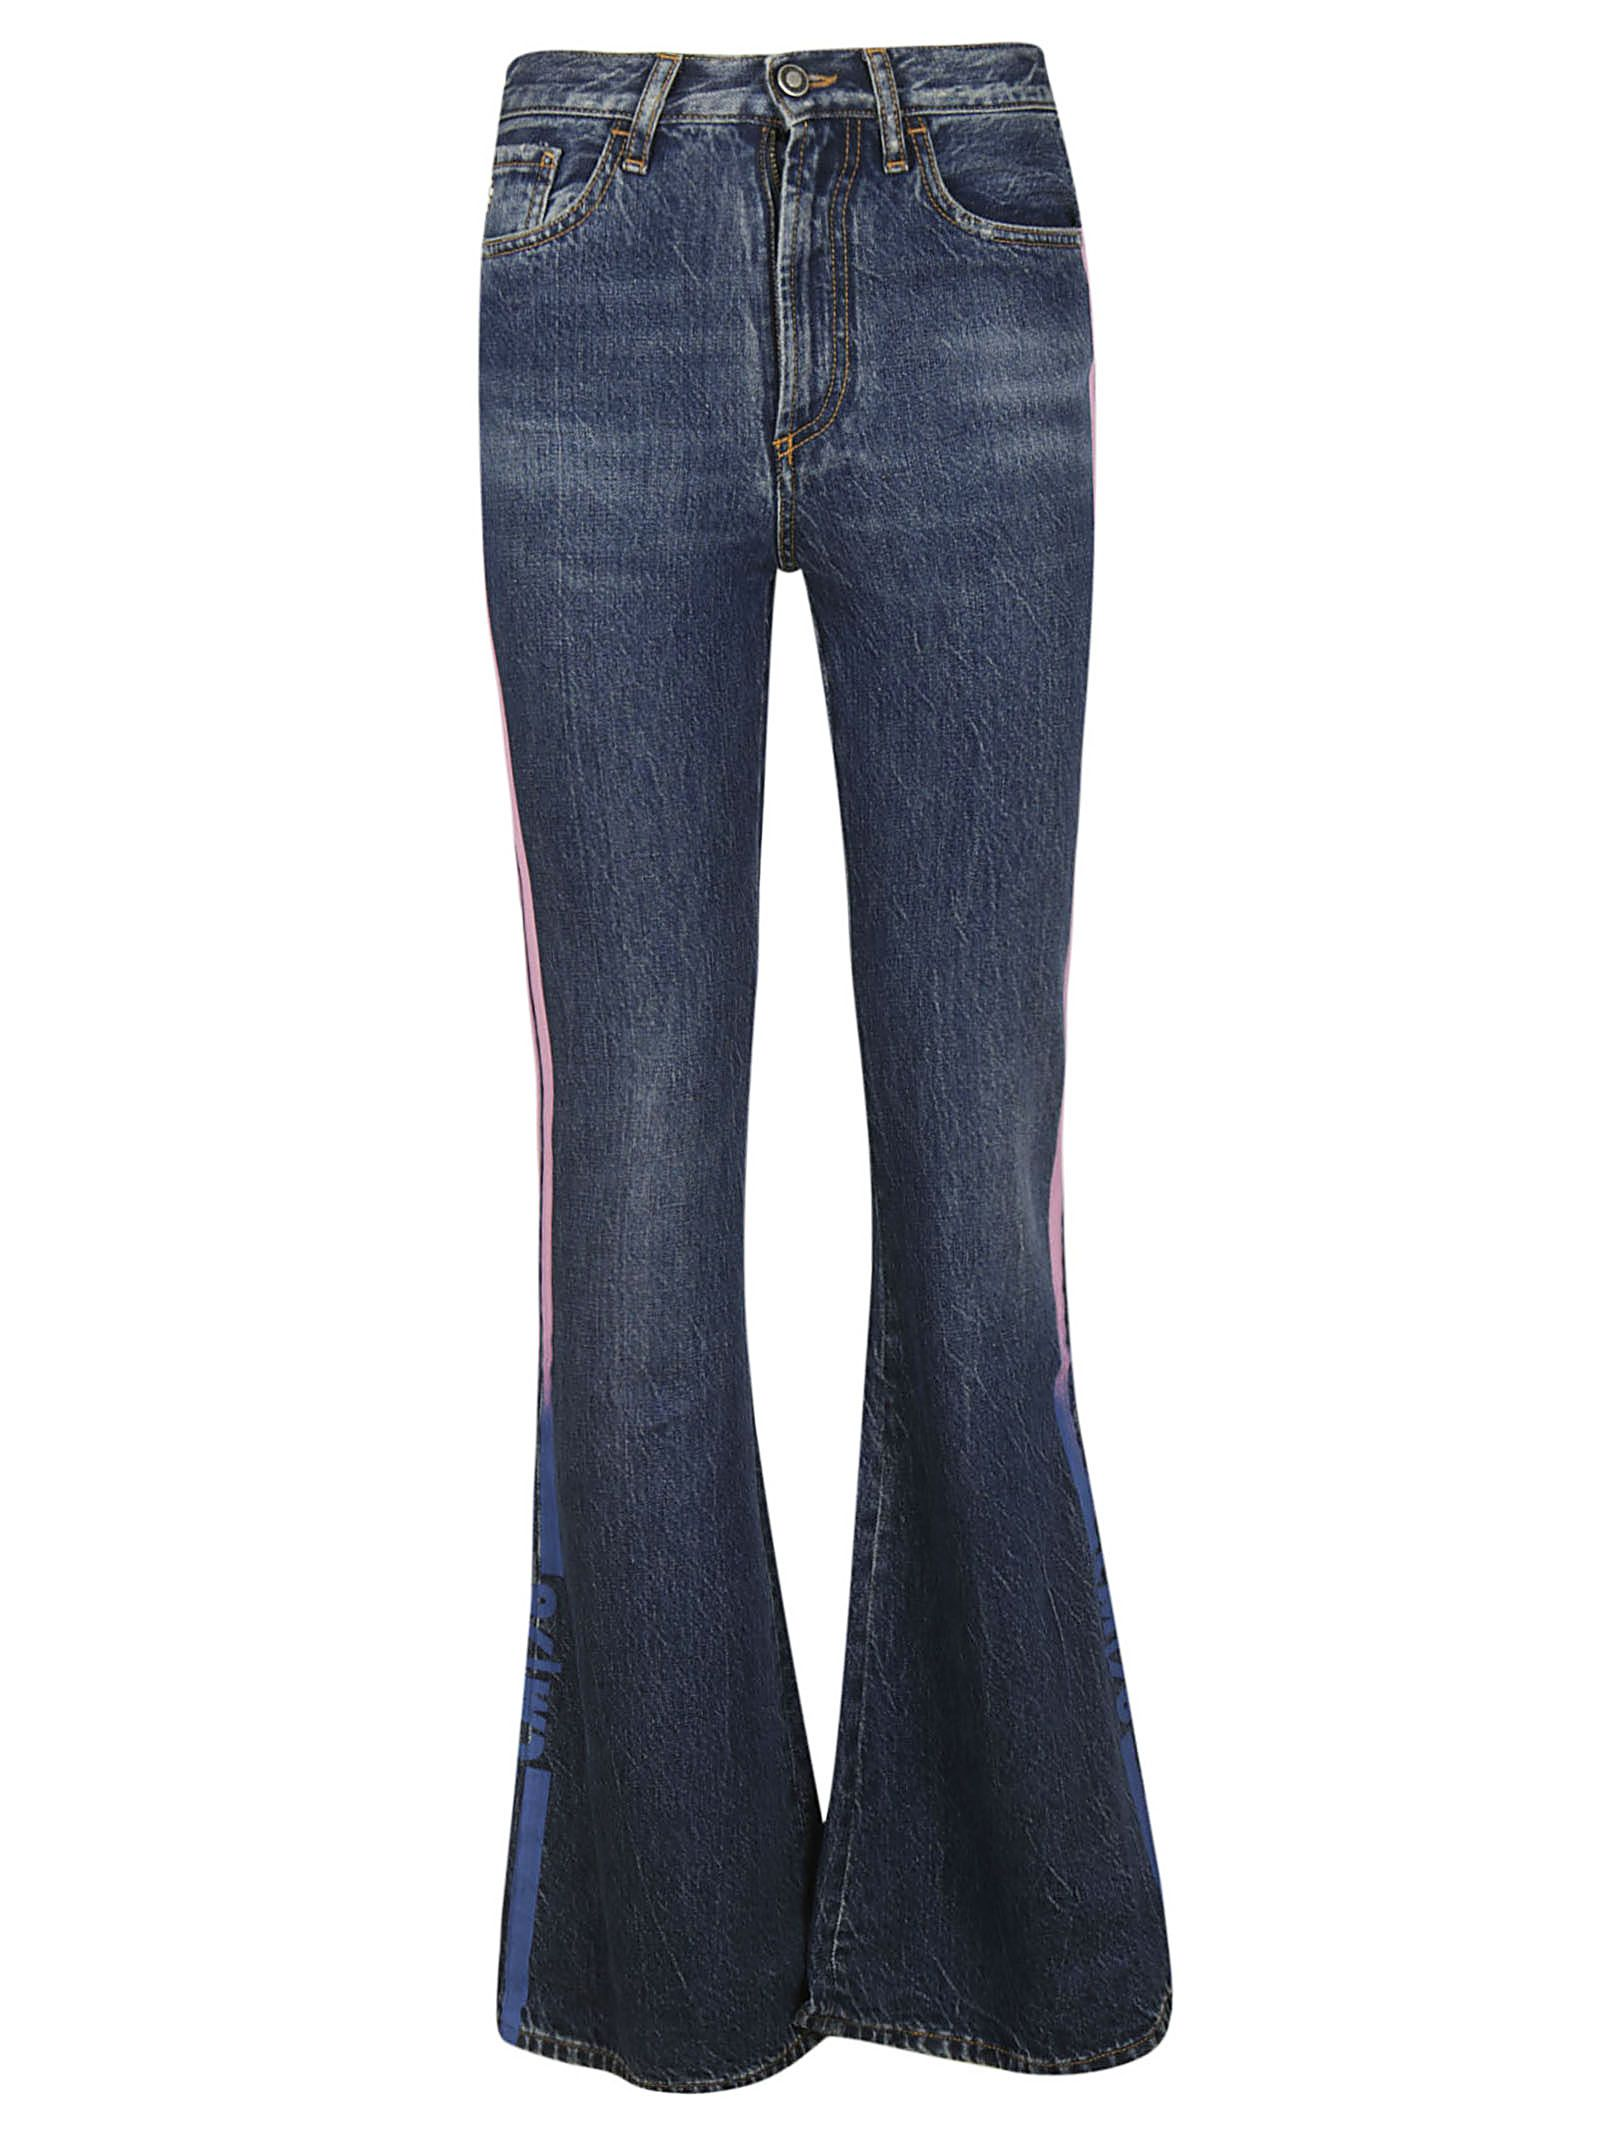 Marcelo Burlon County Of Milan SIDE STRIPED JEANS